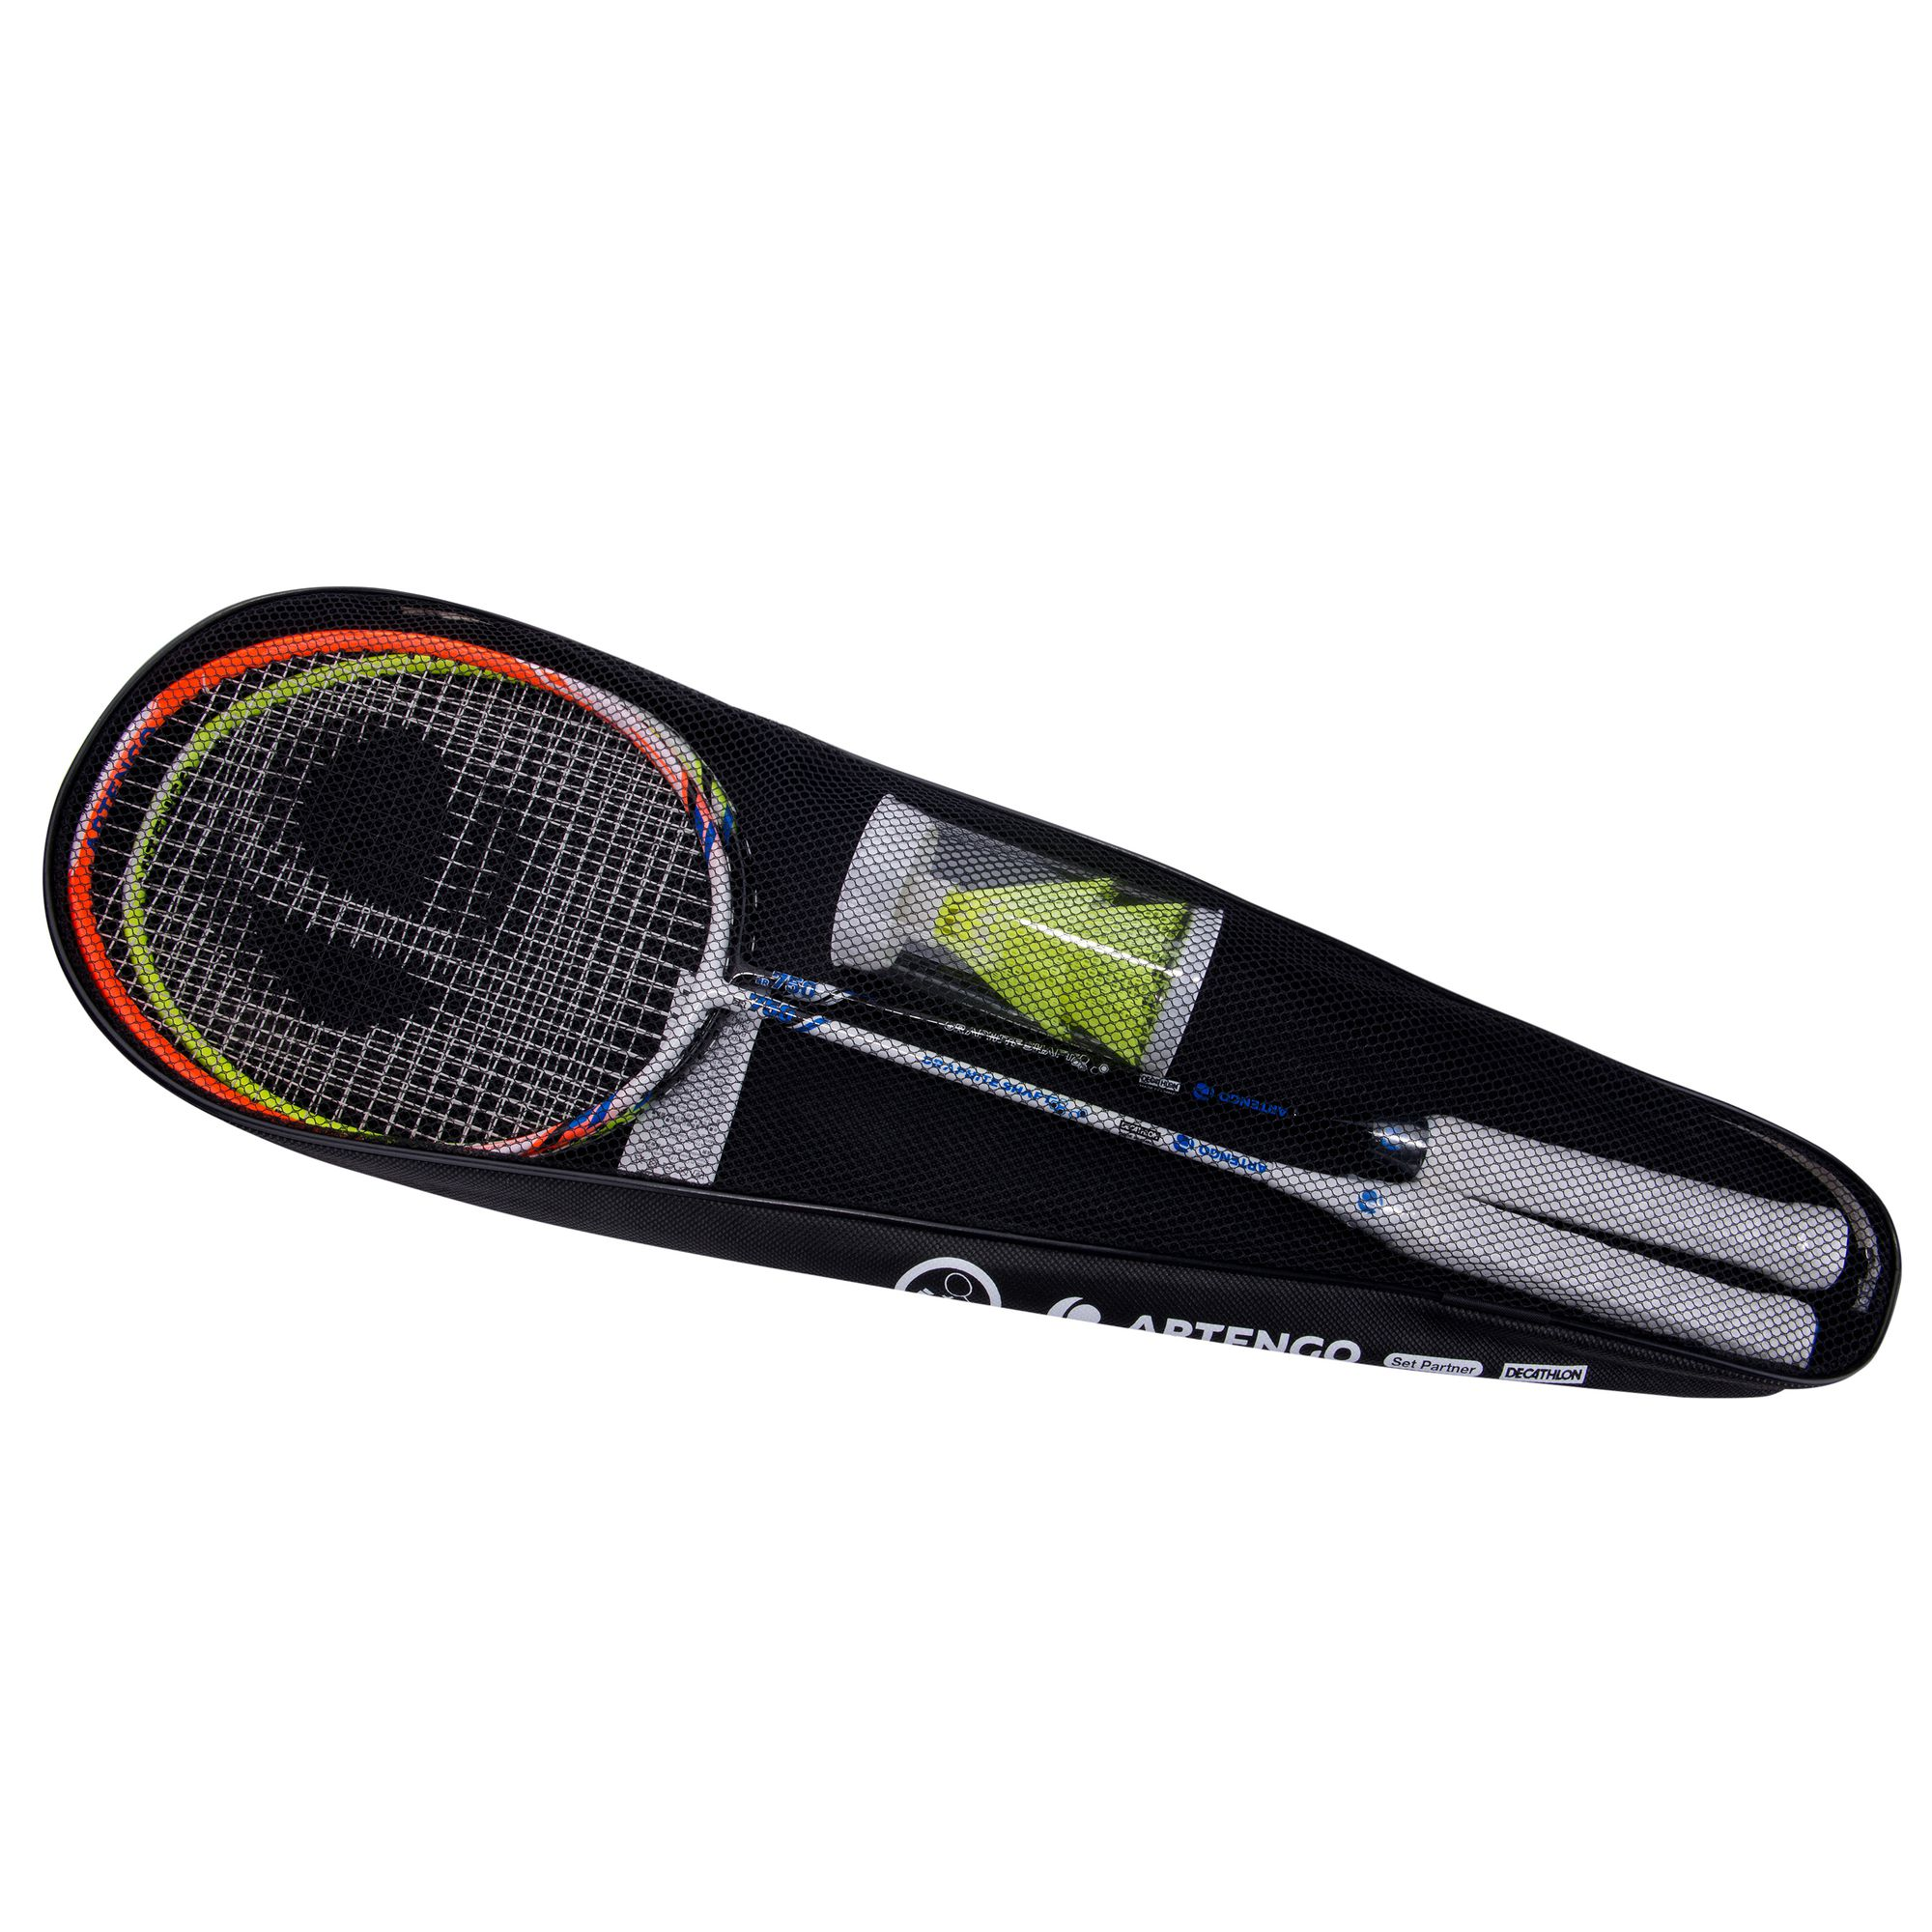 SET RAQUETTES DE BADMINTON - SET PARTNER - ORANGE -